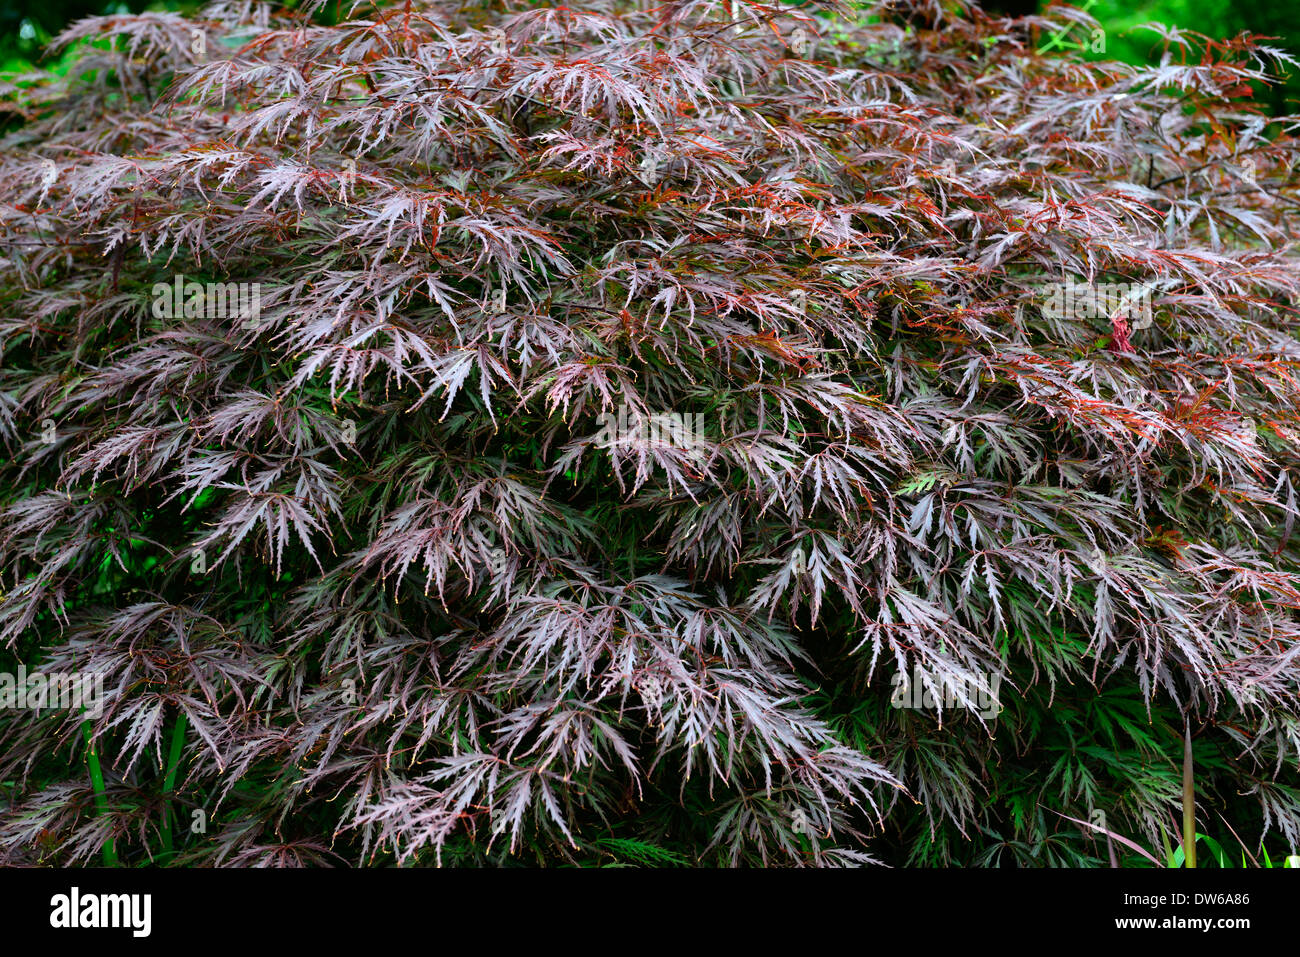 acer palmatum dissectum garnet purple foliage shrubs oriental maples stock photo royalty free. Black Bedroom Furniture Sets. Home Design Ideas